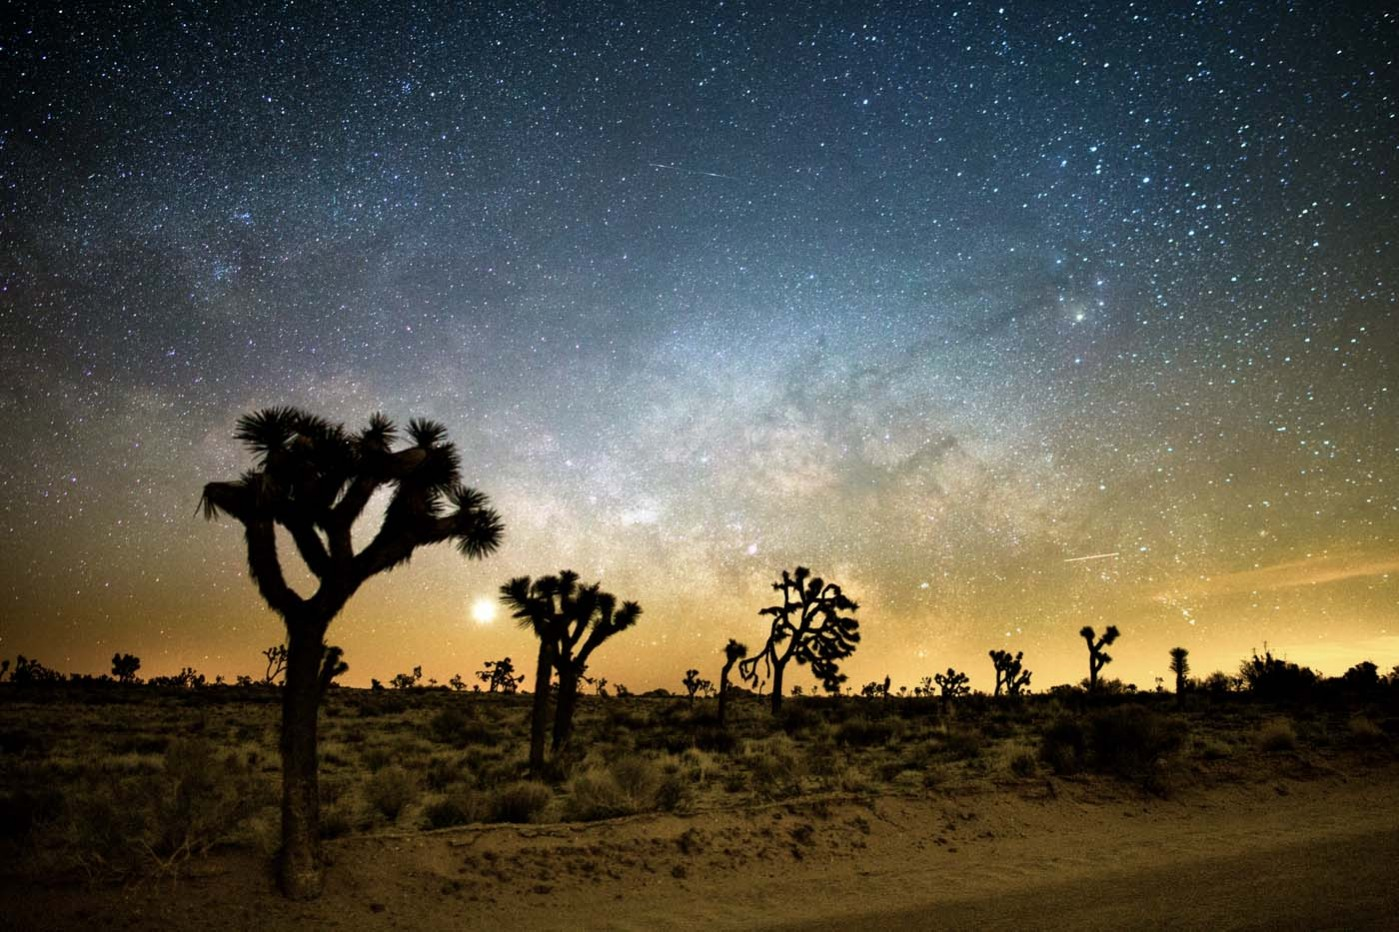 Canon EOS 6D Milky Way from Joshua Tree National Park